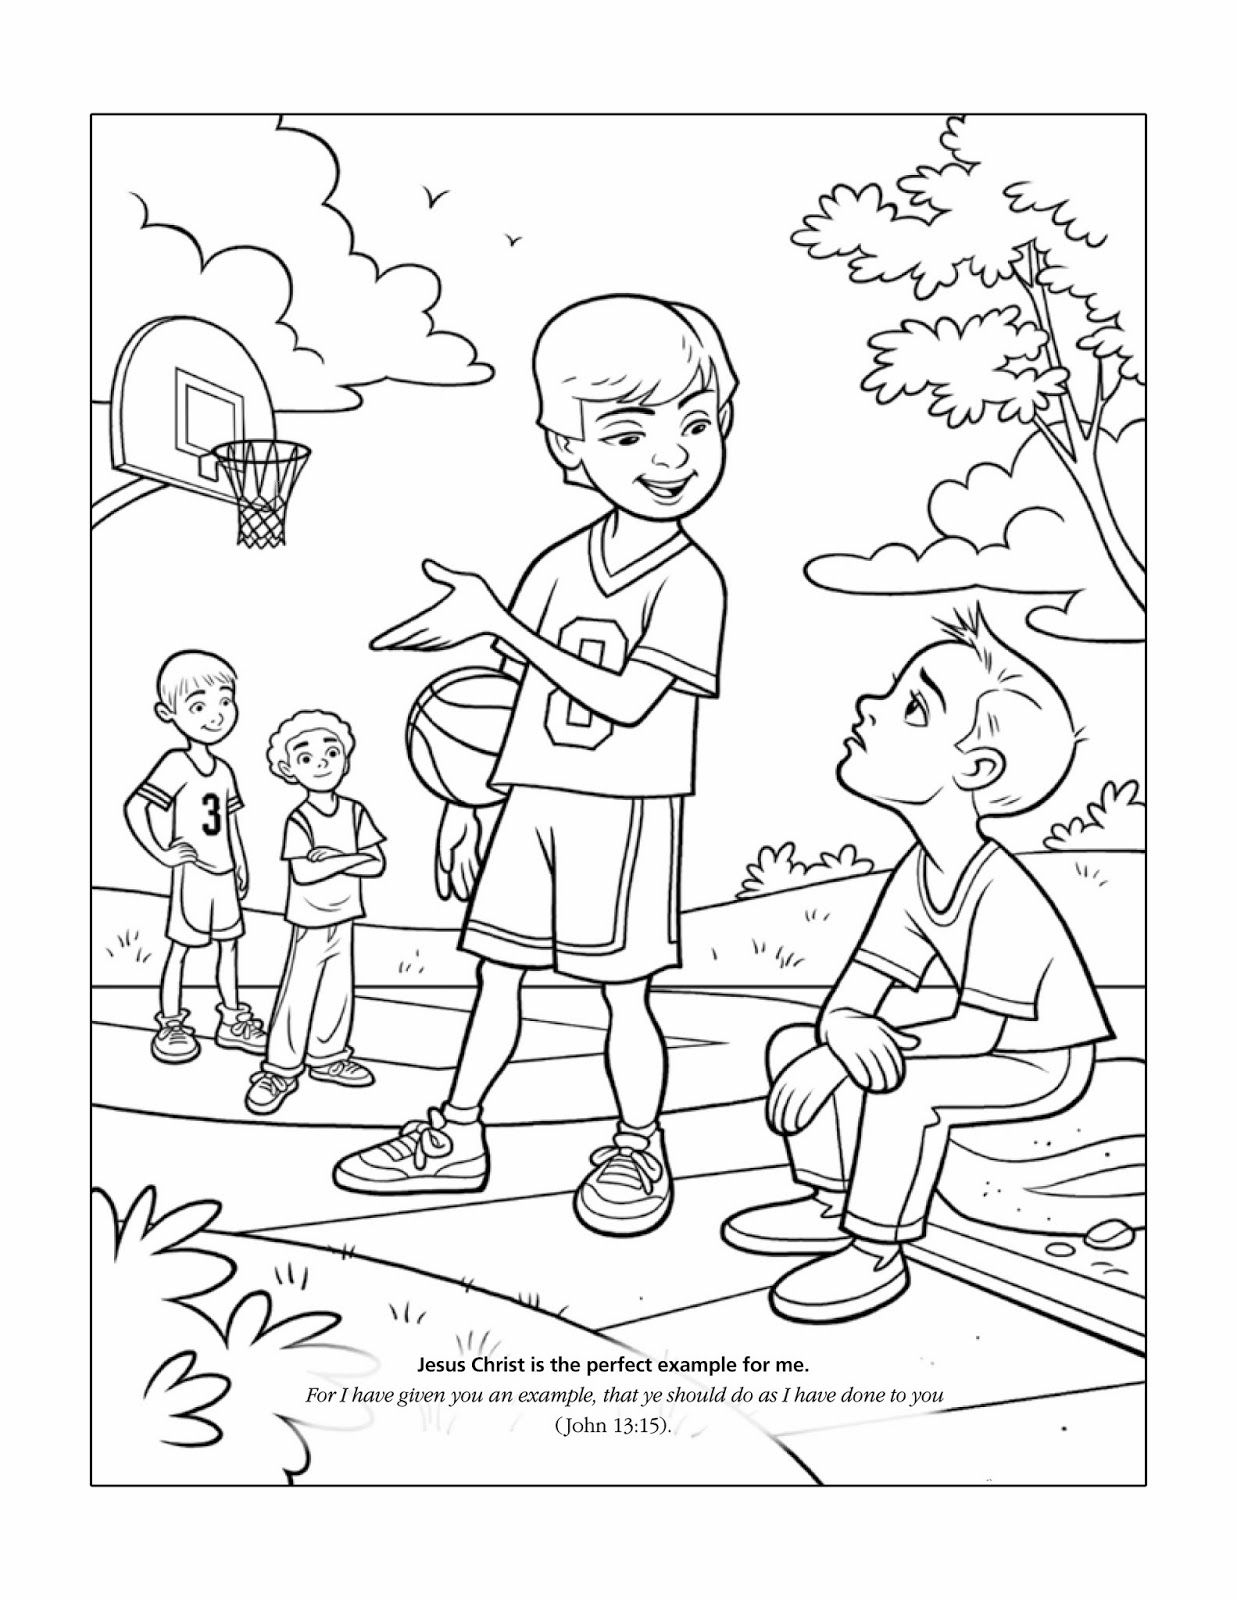 JOHN 13:15 LDS Teaching Visuals: Coloring Pages | colouring pages ...